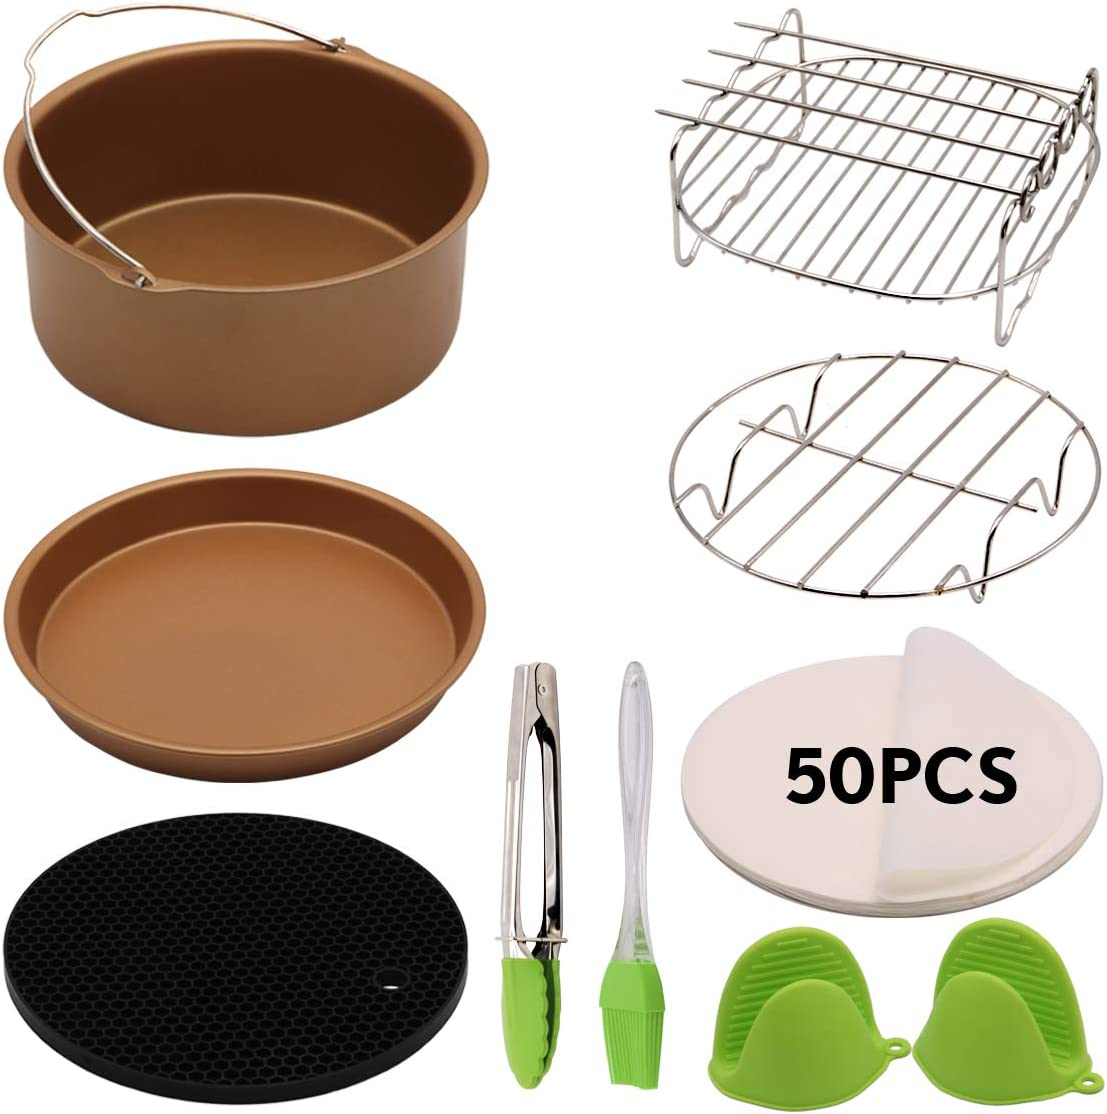 Air Fryer Accessories 59 PCS(C158-6AC) Deep Fryer Accessories Fit all 5.3Qt,5.8Qt,6Qt Air Fryer with Cake Barrel,Pizza Pan,Metal Holder,Skewer Rack,Mat,Brush,Tongs,Mitts,Liners,Champagne Gold